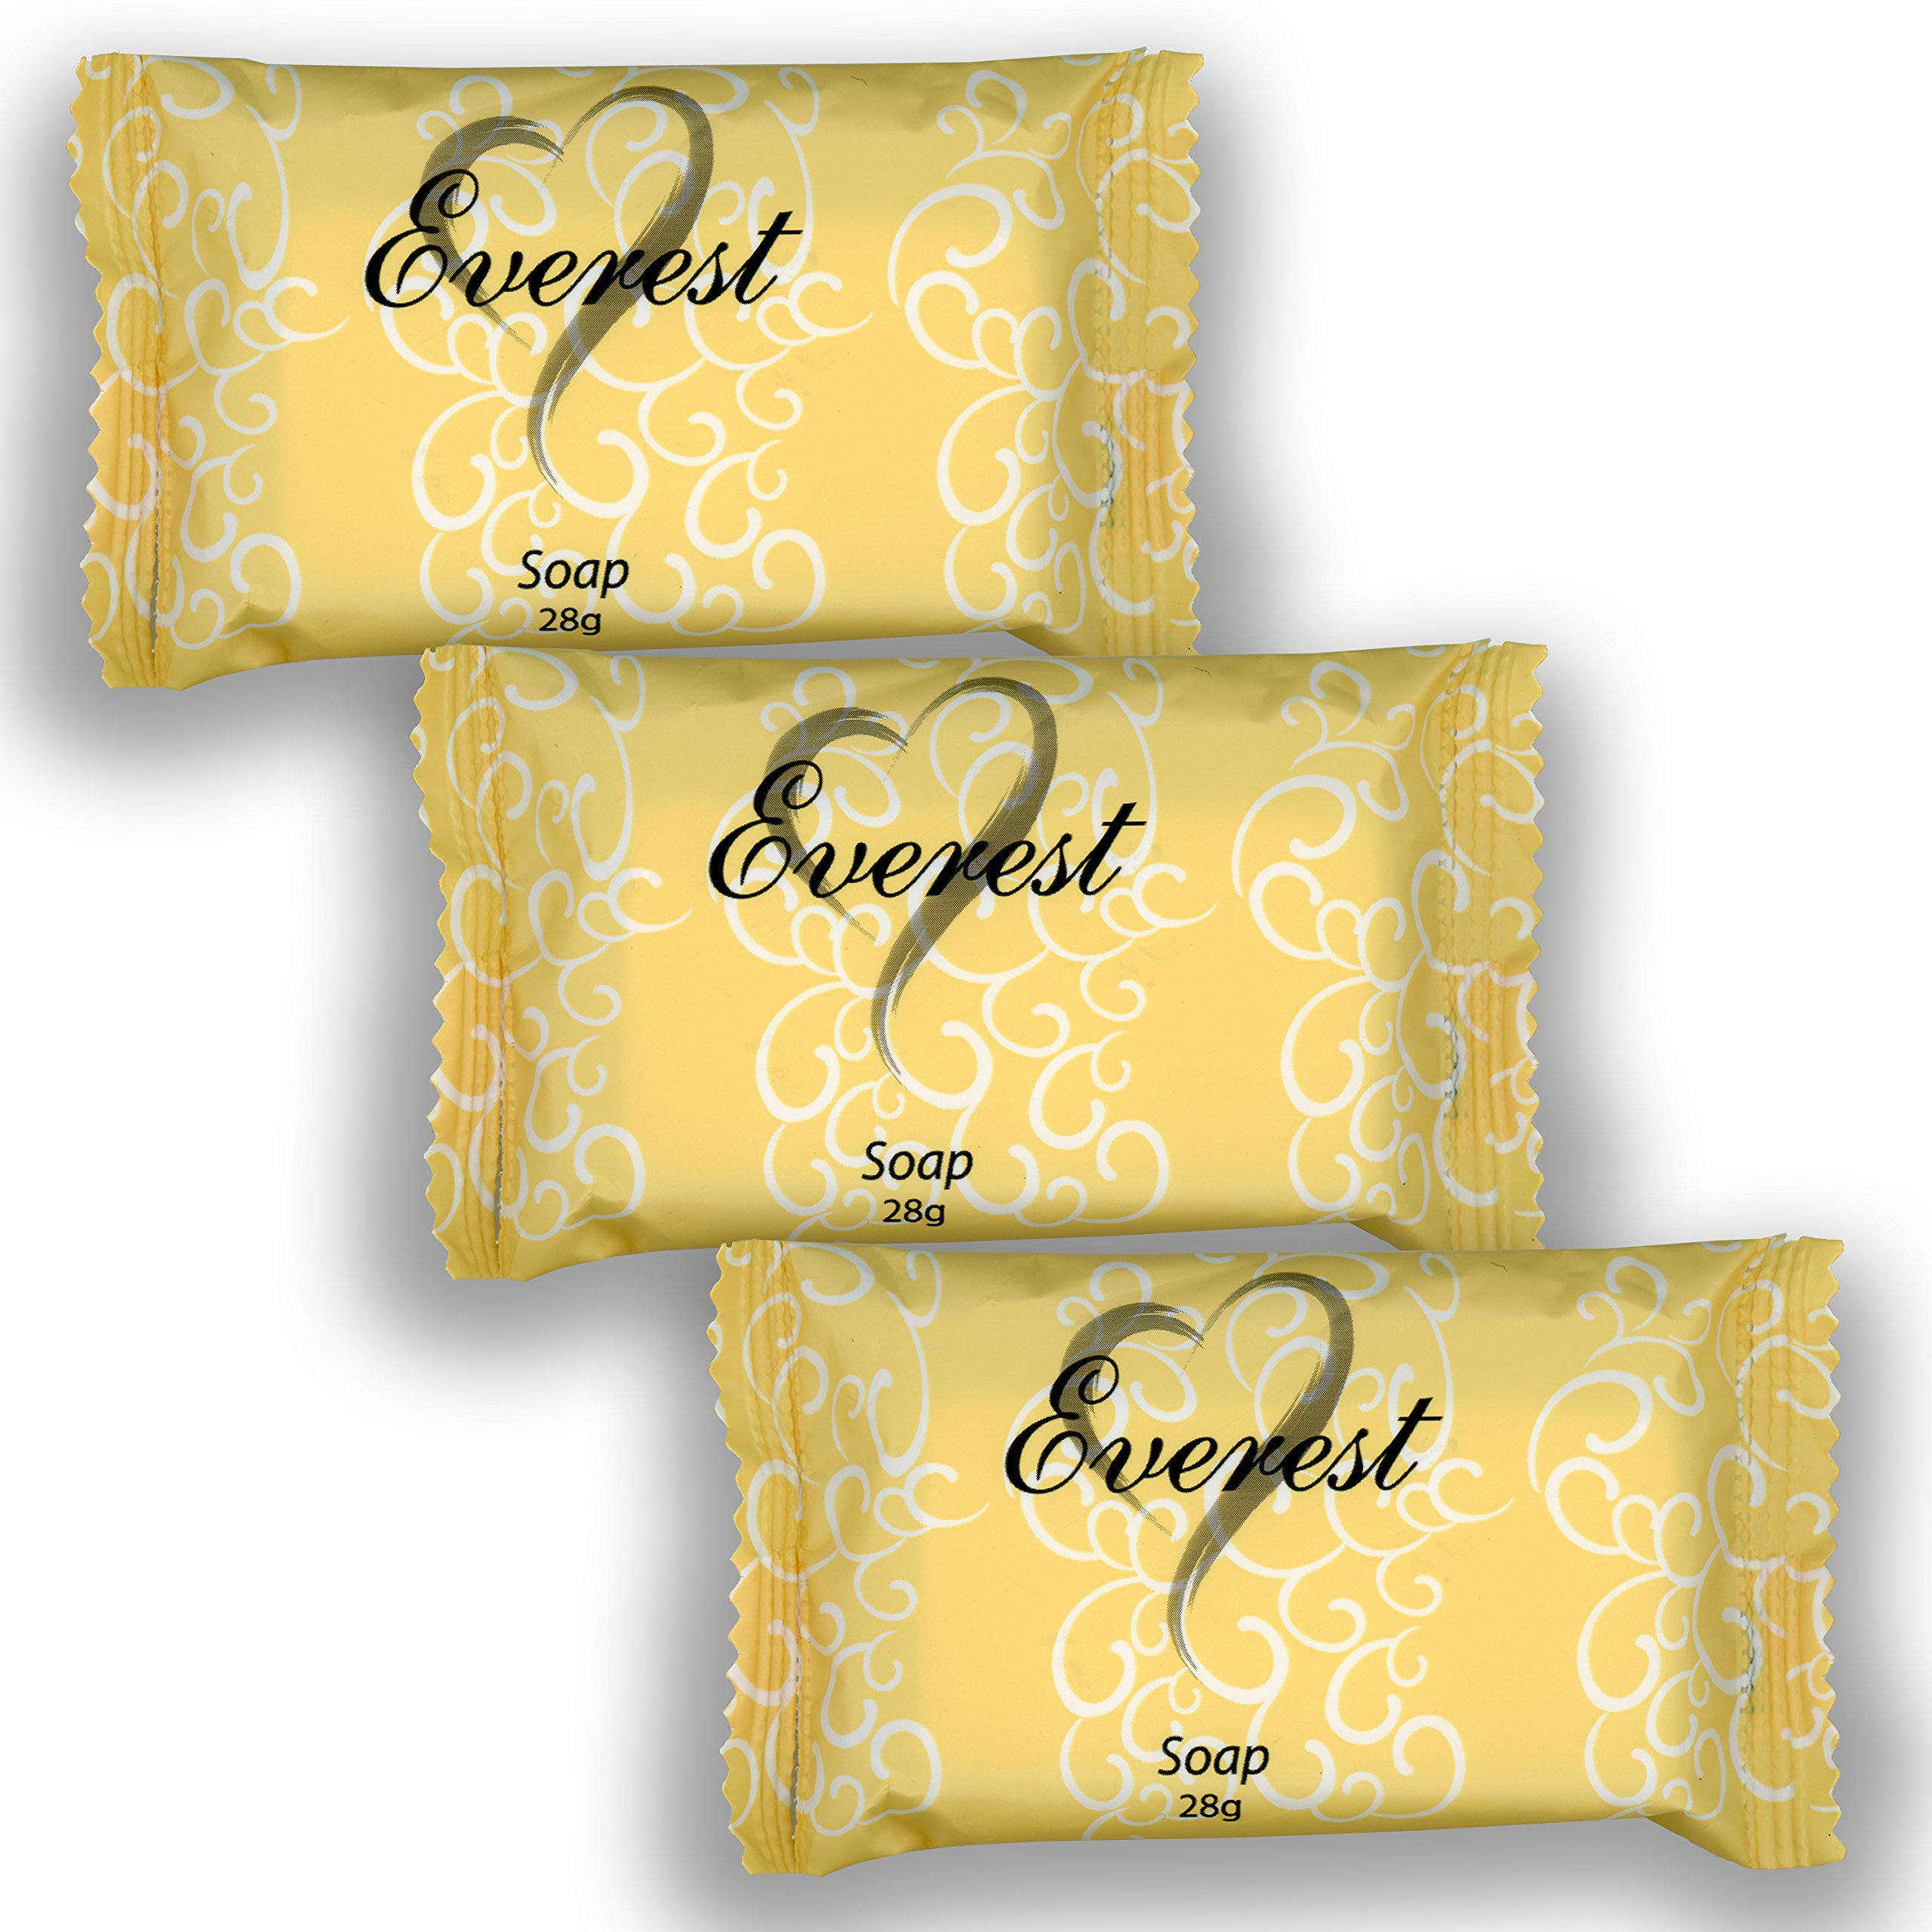 Everest Soap 500 pack, 28 grams(1oz) Individually Wrapped Travel Soap Bar Amenities for Hotels & Motels, Resorts, AirBnB Guests Toiletries Bulk Discount Price Made of Coconut Oil (cocos nucifera oil)